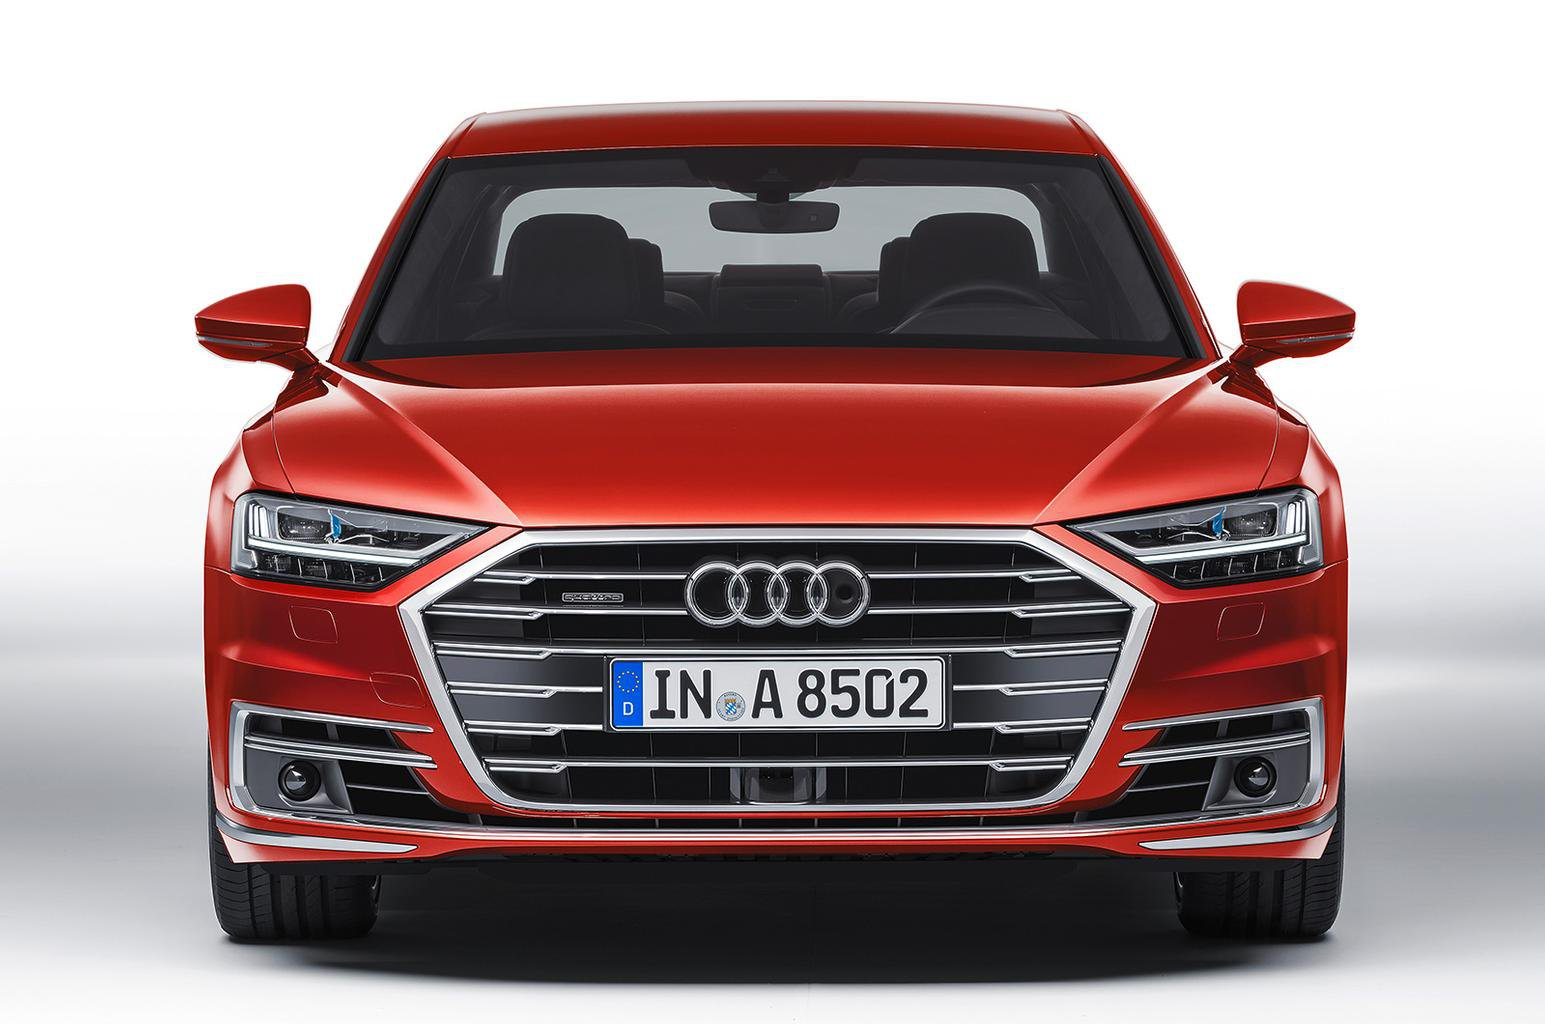 New Audi A8 revealed – prices, specs and engines